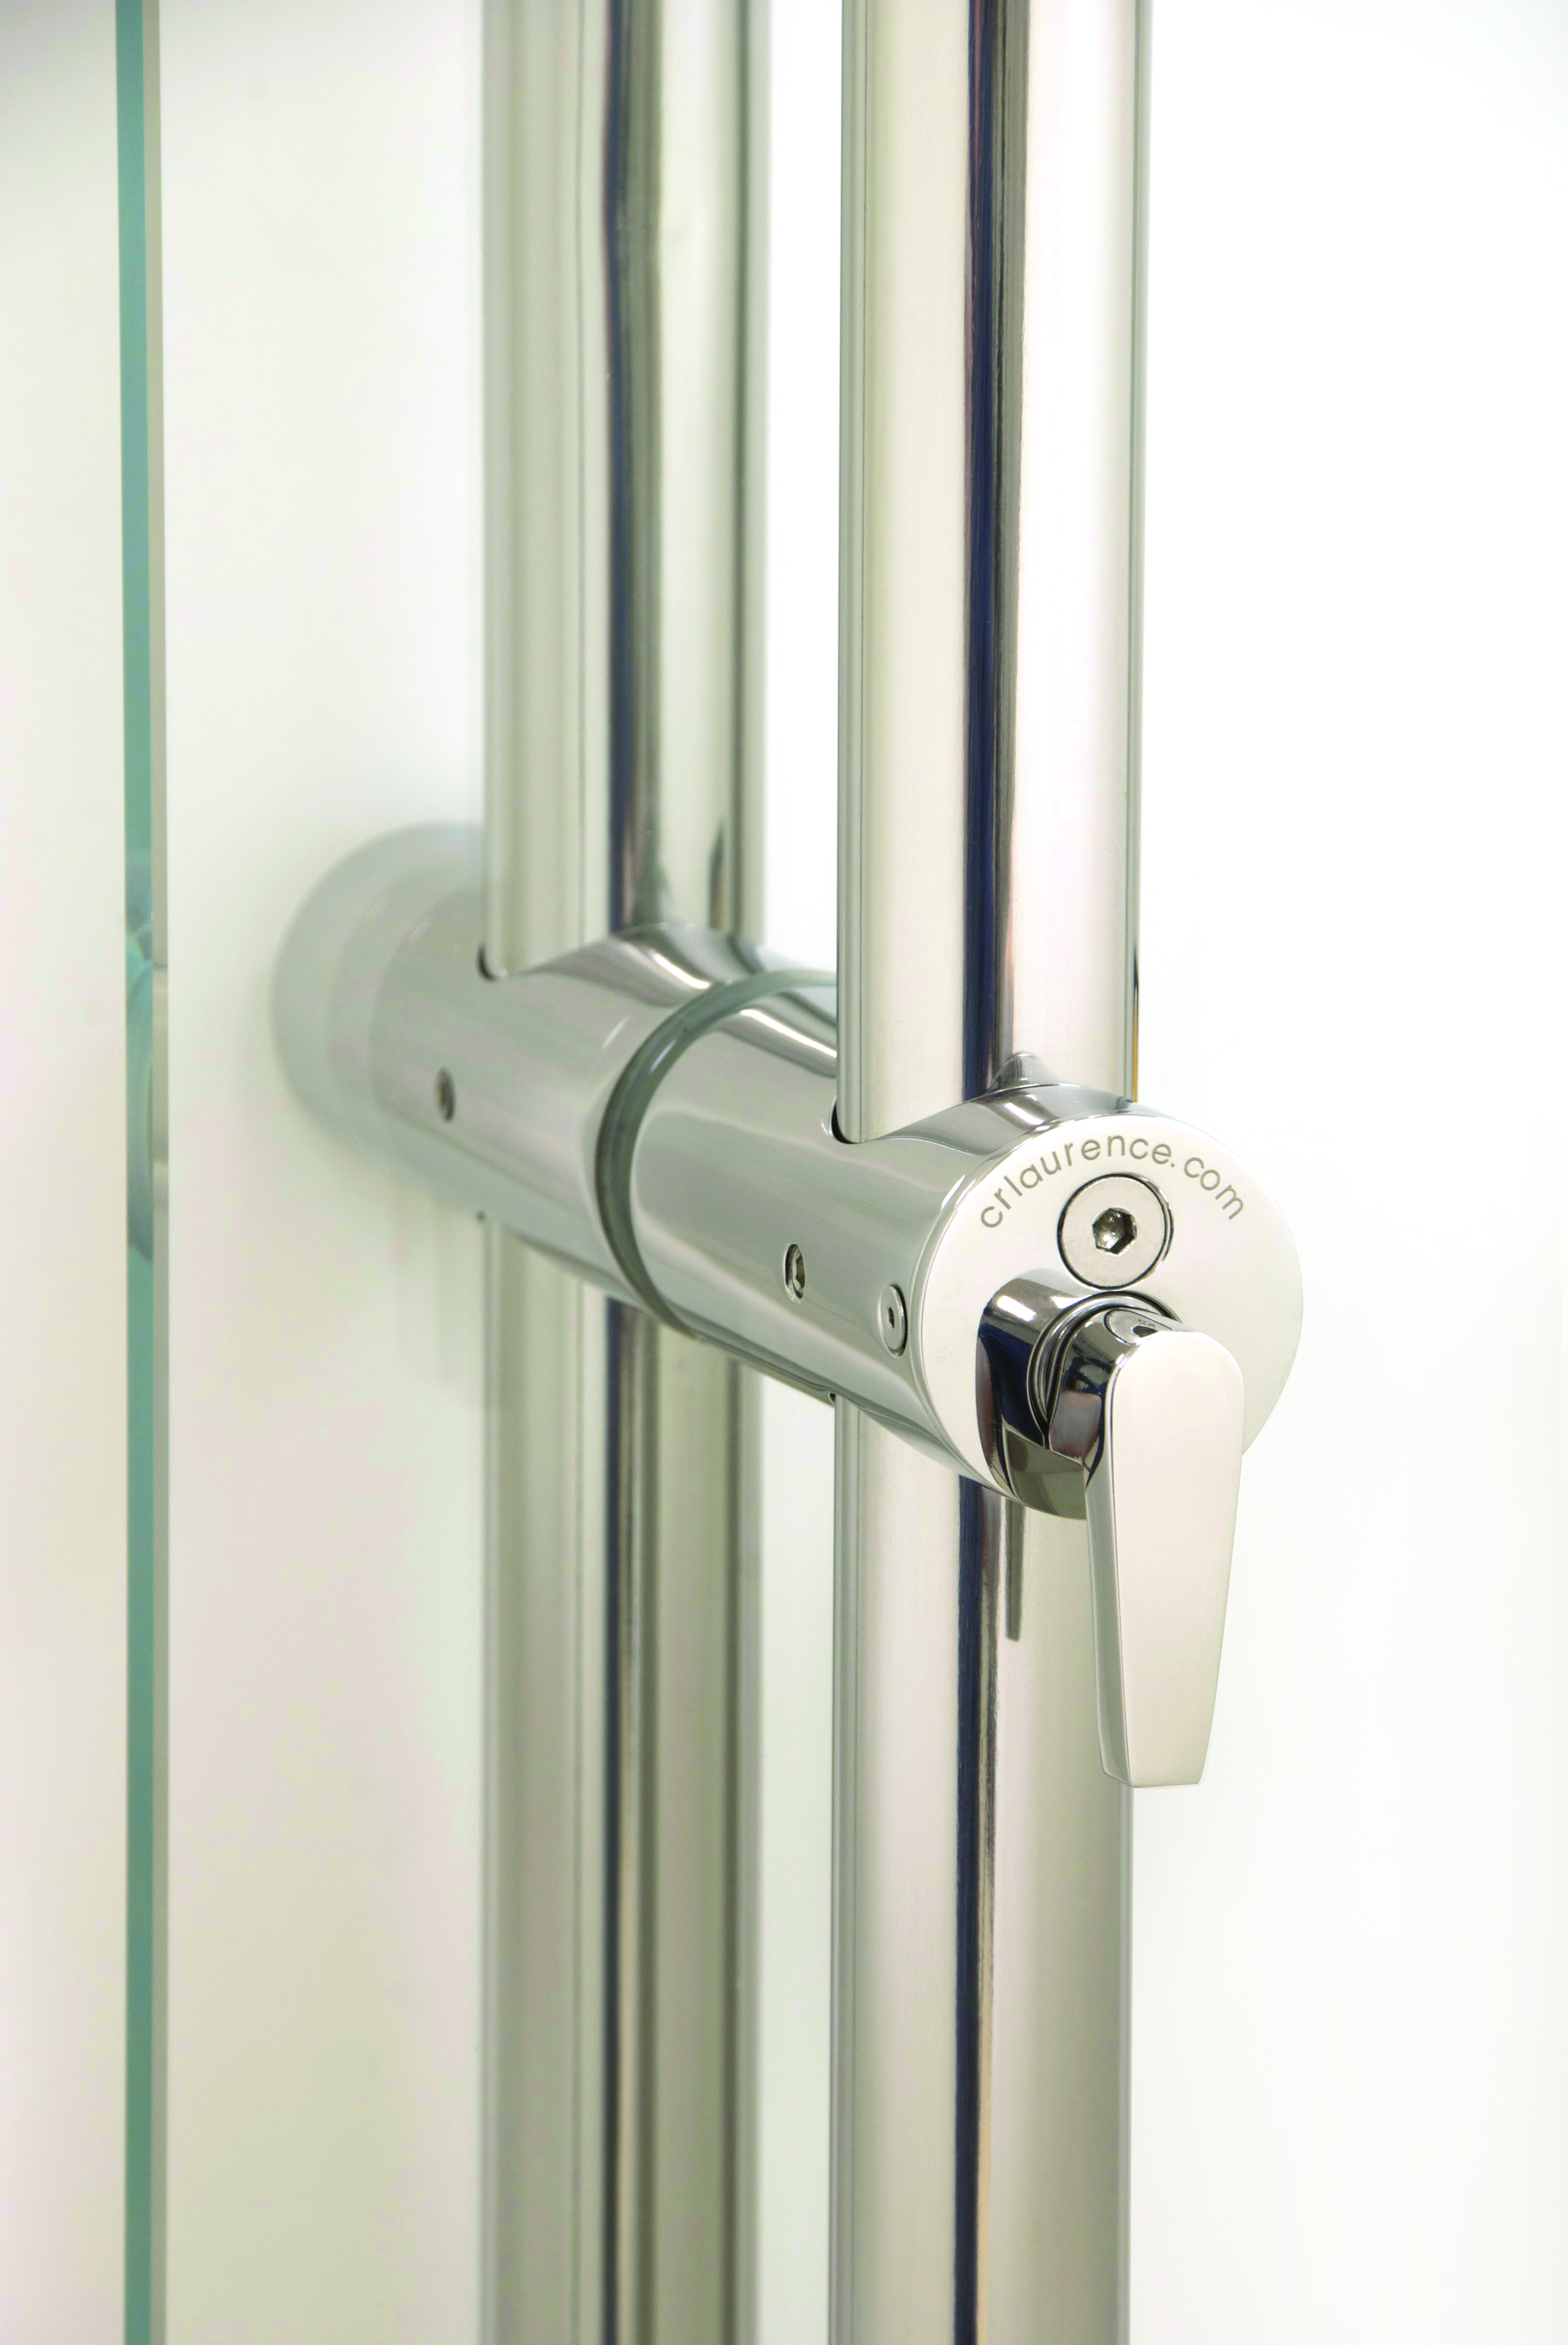 C R Laurence Introduces New Line Of A D A Compliant